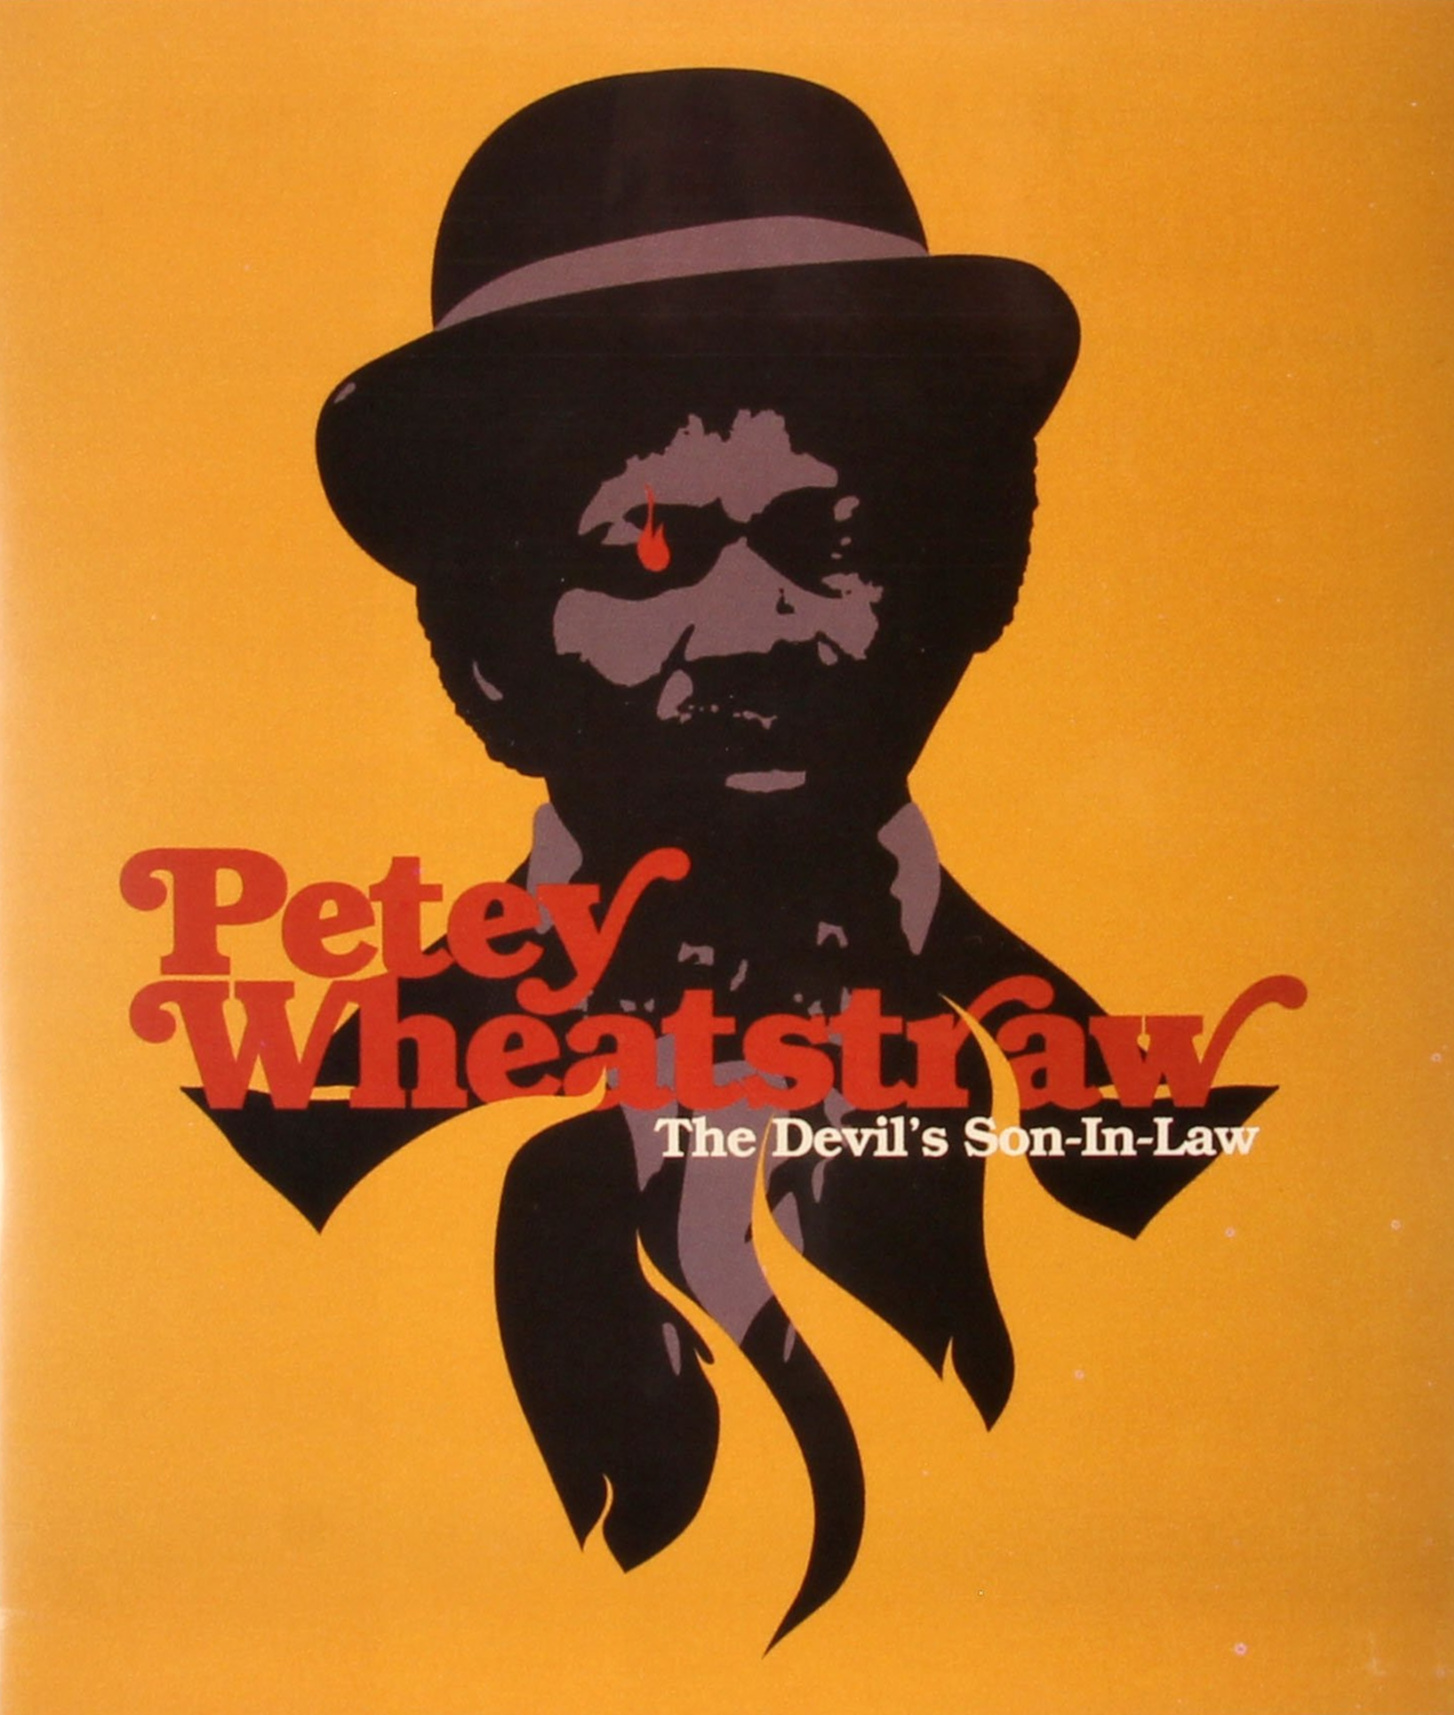 PETEY WHEATSTRAW - (RECOMMENDED PURCHASE)Rudy Ray Moore is Petey Wheatstraw, whose talent for comedy is only topped by his gift for Kung-Fu. When his arch rivals, Leroy and Skillet, massacre him and his friends, Petey ends up in Hell and is given a unique opportunity: in exchange for his and his friends' return to earth, he must wed Satan's daughter. The only problem: she's the ugliest woman he's ever seen! Will Petey be able to defeat Satan with his magic pimp cane or will he be forced to become the Devil's son-in-law?Rudy Ray Moore's third theatrical feature, PETEY WHEATSTRAW is a raucous and ridiculous blending of action, horror, and Moore's signature brand of raunchy humor. Written and directed by Cliff Roquemore, PETEY is perhaps the craziest of all of Moore's films and is coming to Blu-ray for the first time, newly restored in 2k from its original 35mm camera negative.Directed by: Cliff RoquemoreActors: Rudy Ray Moore, Jimmy Lynch, Leroy Daniels, Ernest Mayhand, Ebony Wright, G. Tito Shaw1977 / 99 minutes / Color / 1.85:1-Region free Blu-ray and DVD combo pack.-All extras on both formats.-Scanned and restored in 2k from 35mm original camera negative-